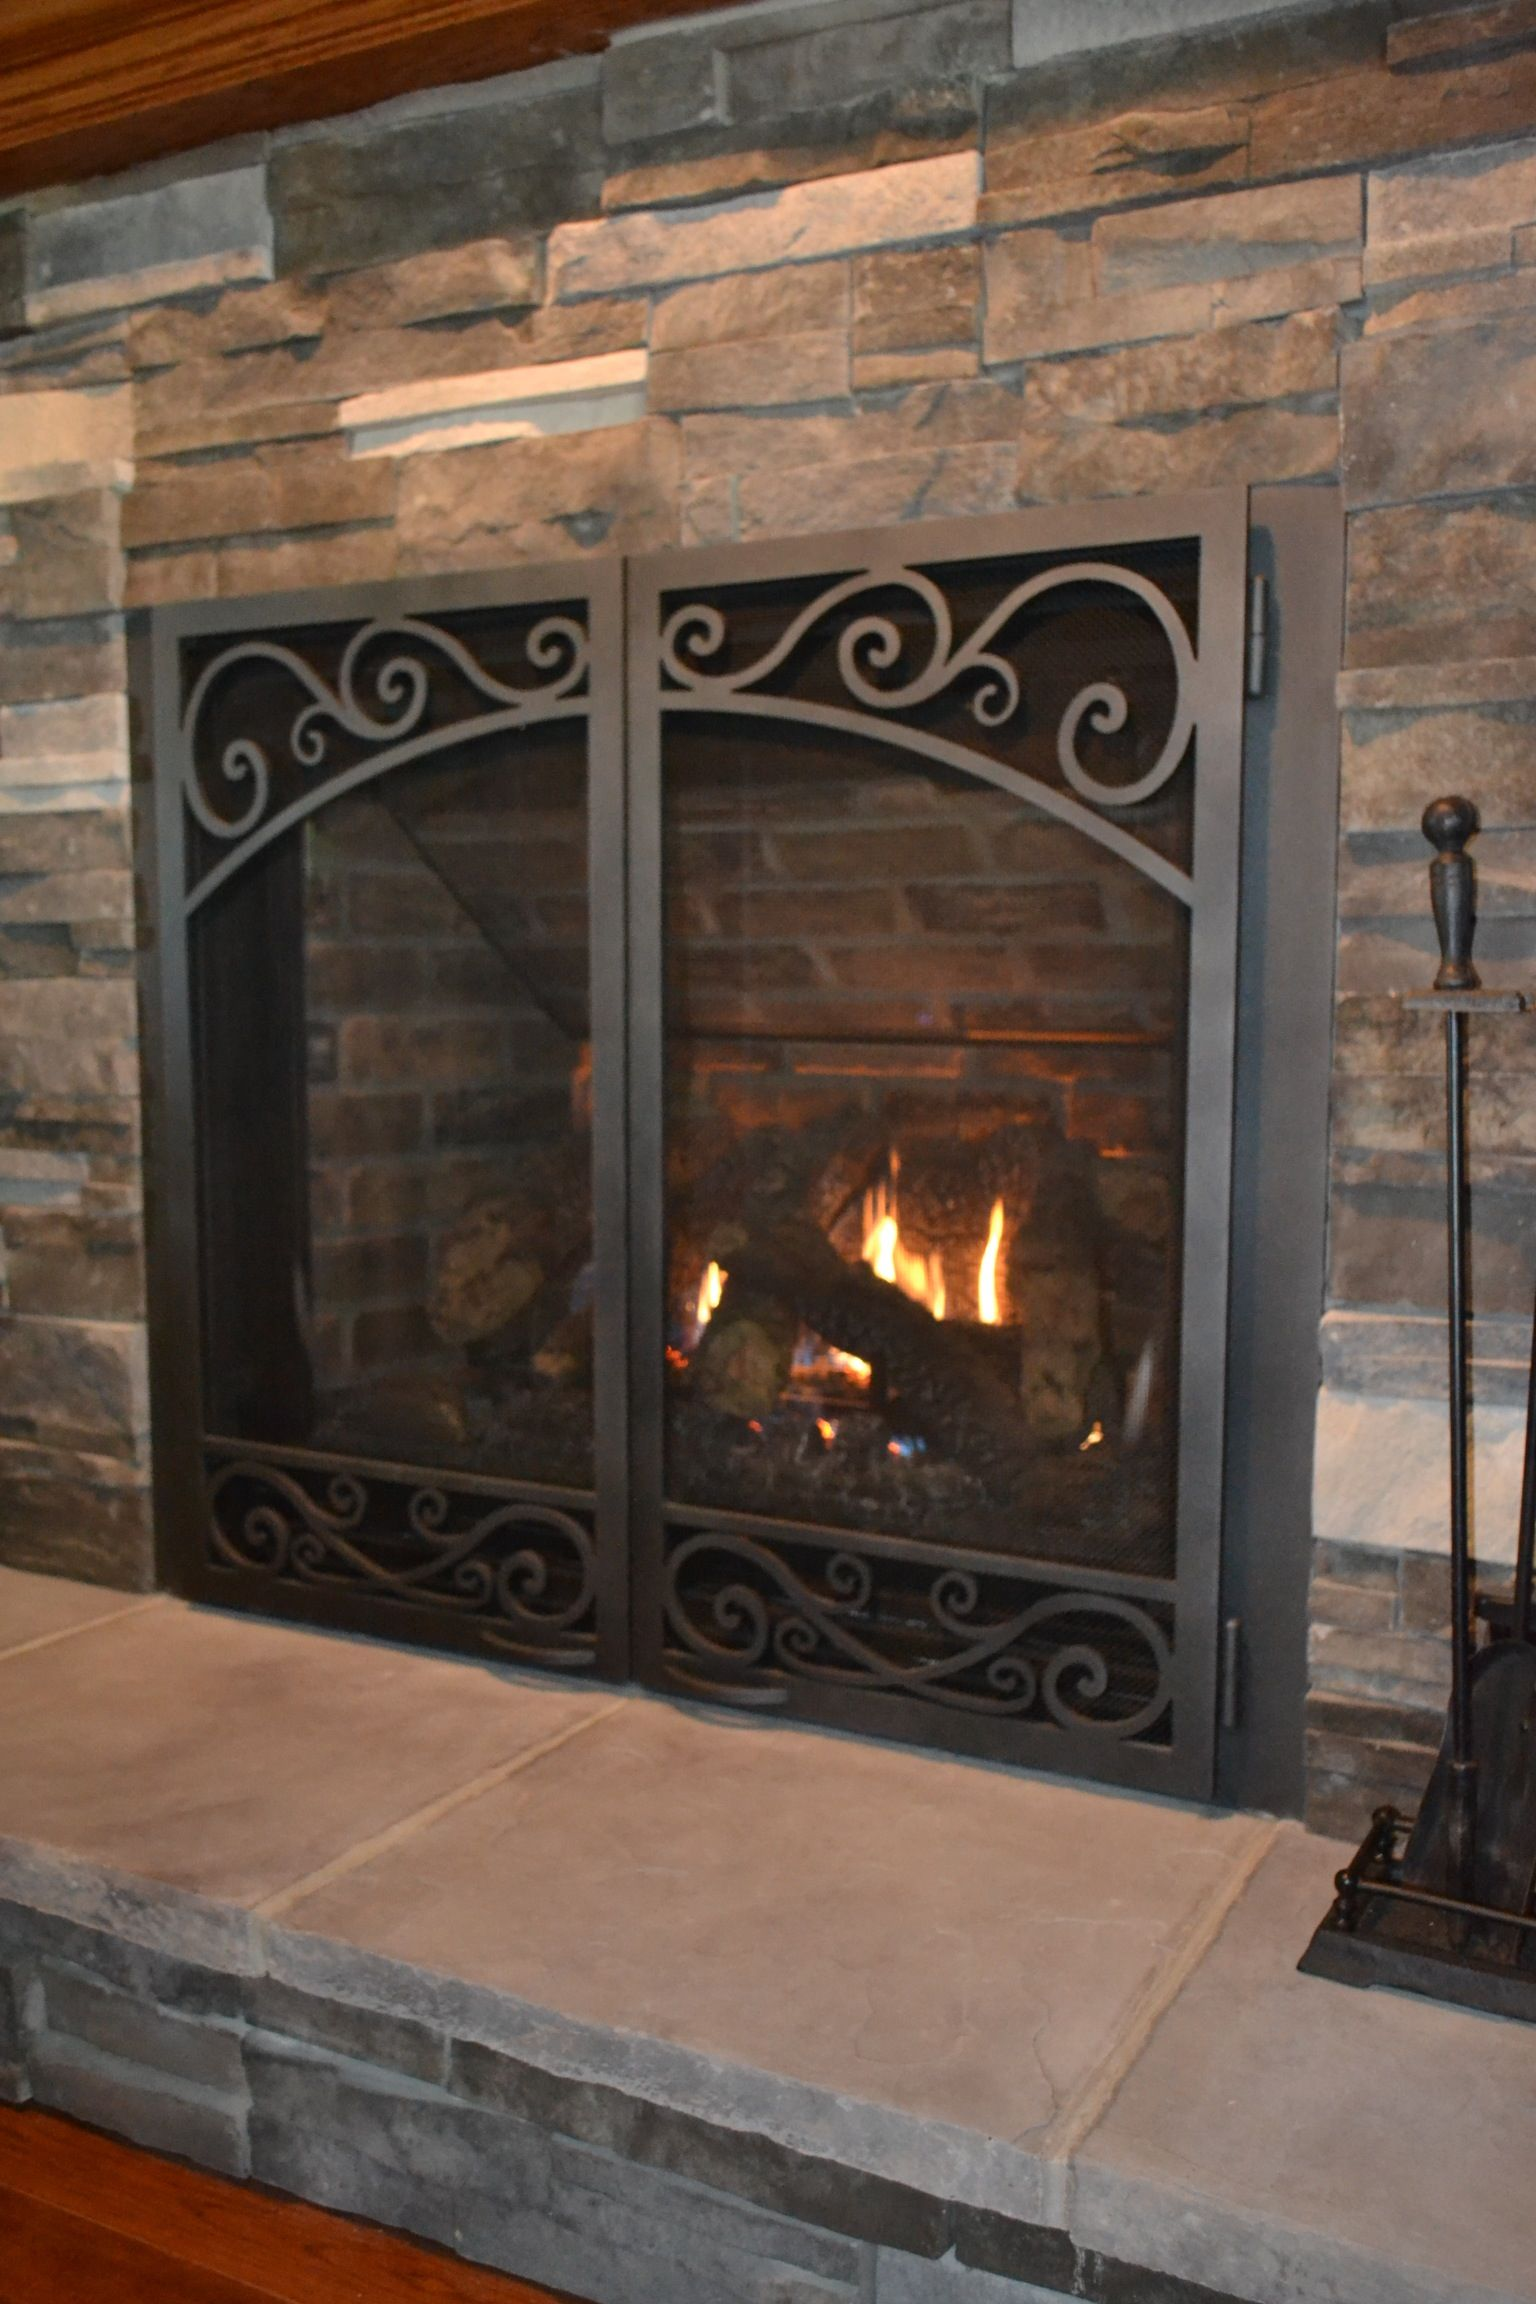 Home decor, Heating, cooling, Home